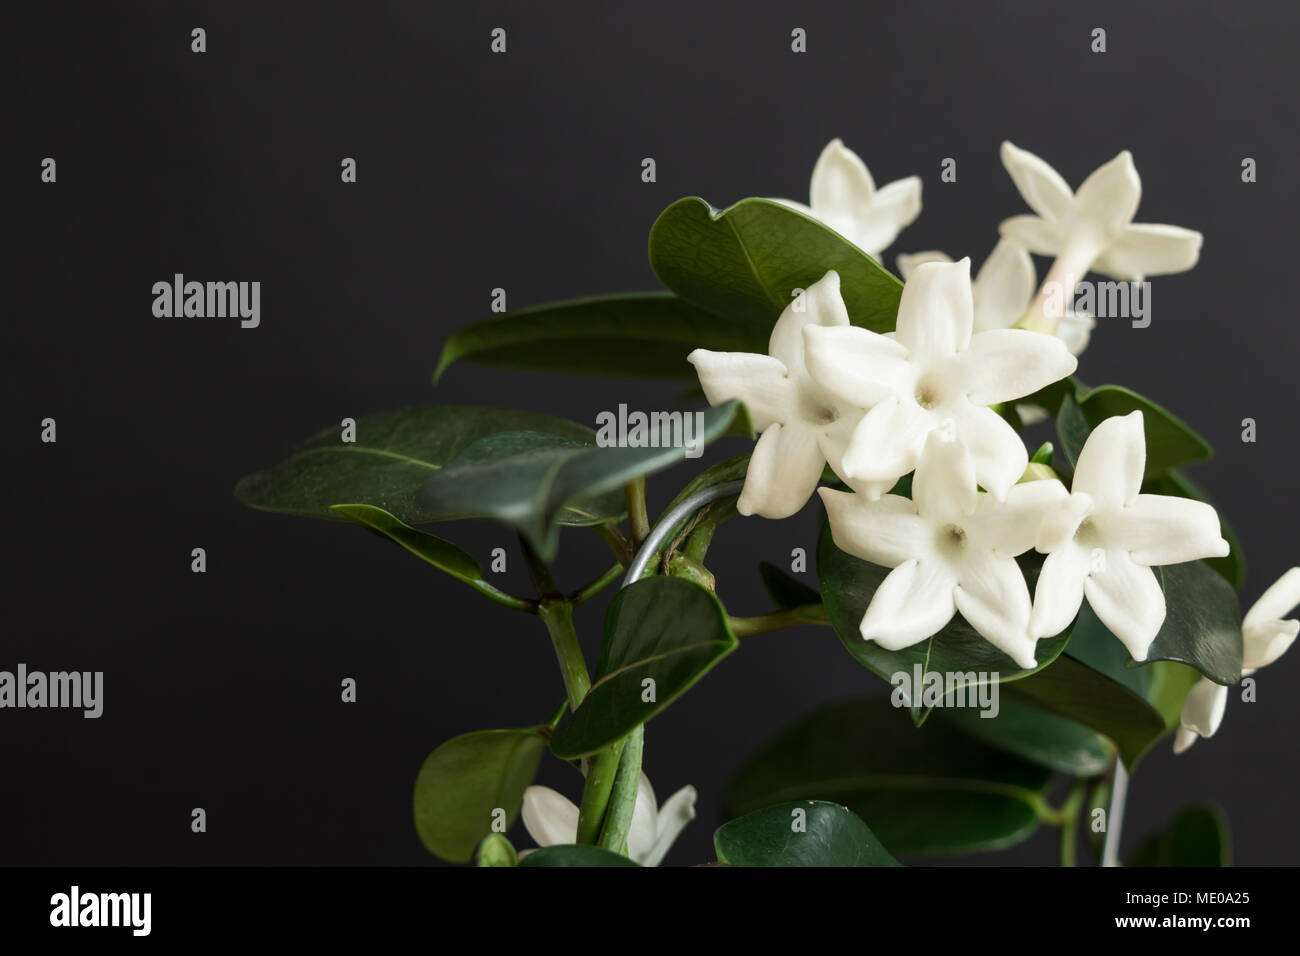 Jasmine Flower Plant With Green Leafs On Black Background Stock